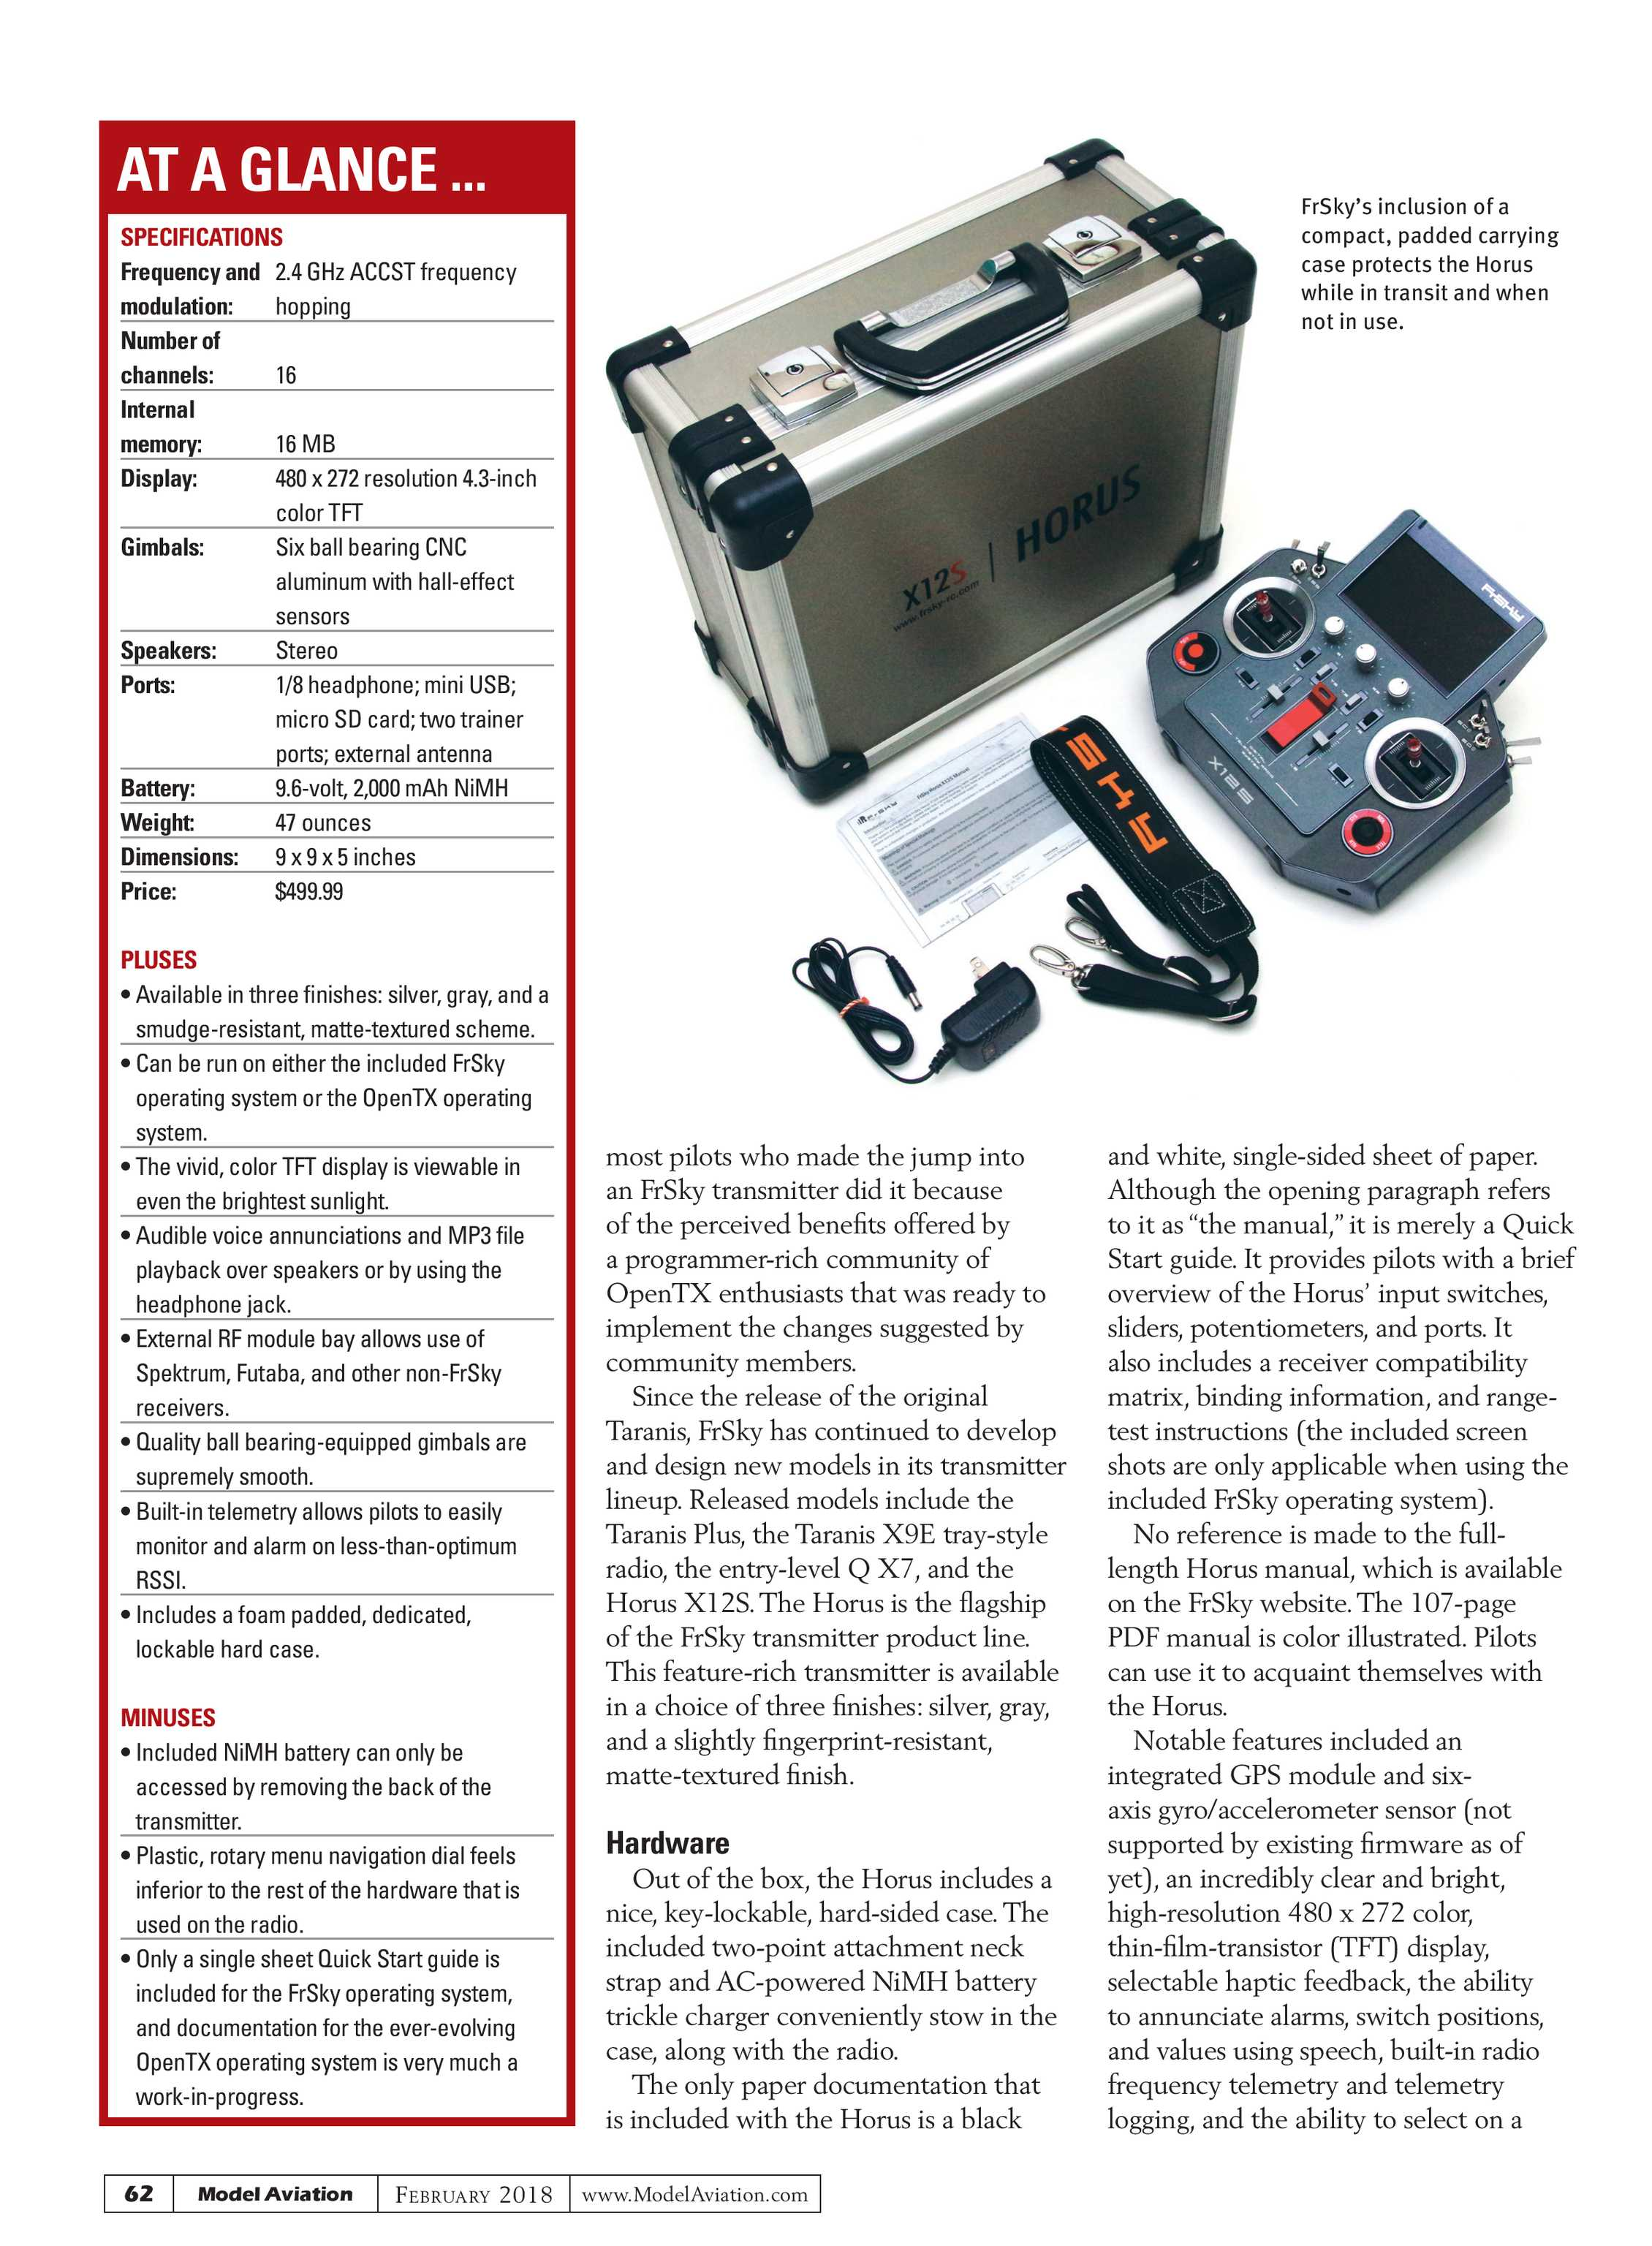 Model Aviation - February 2018 - page 61